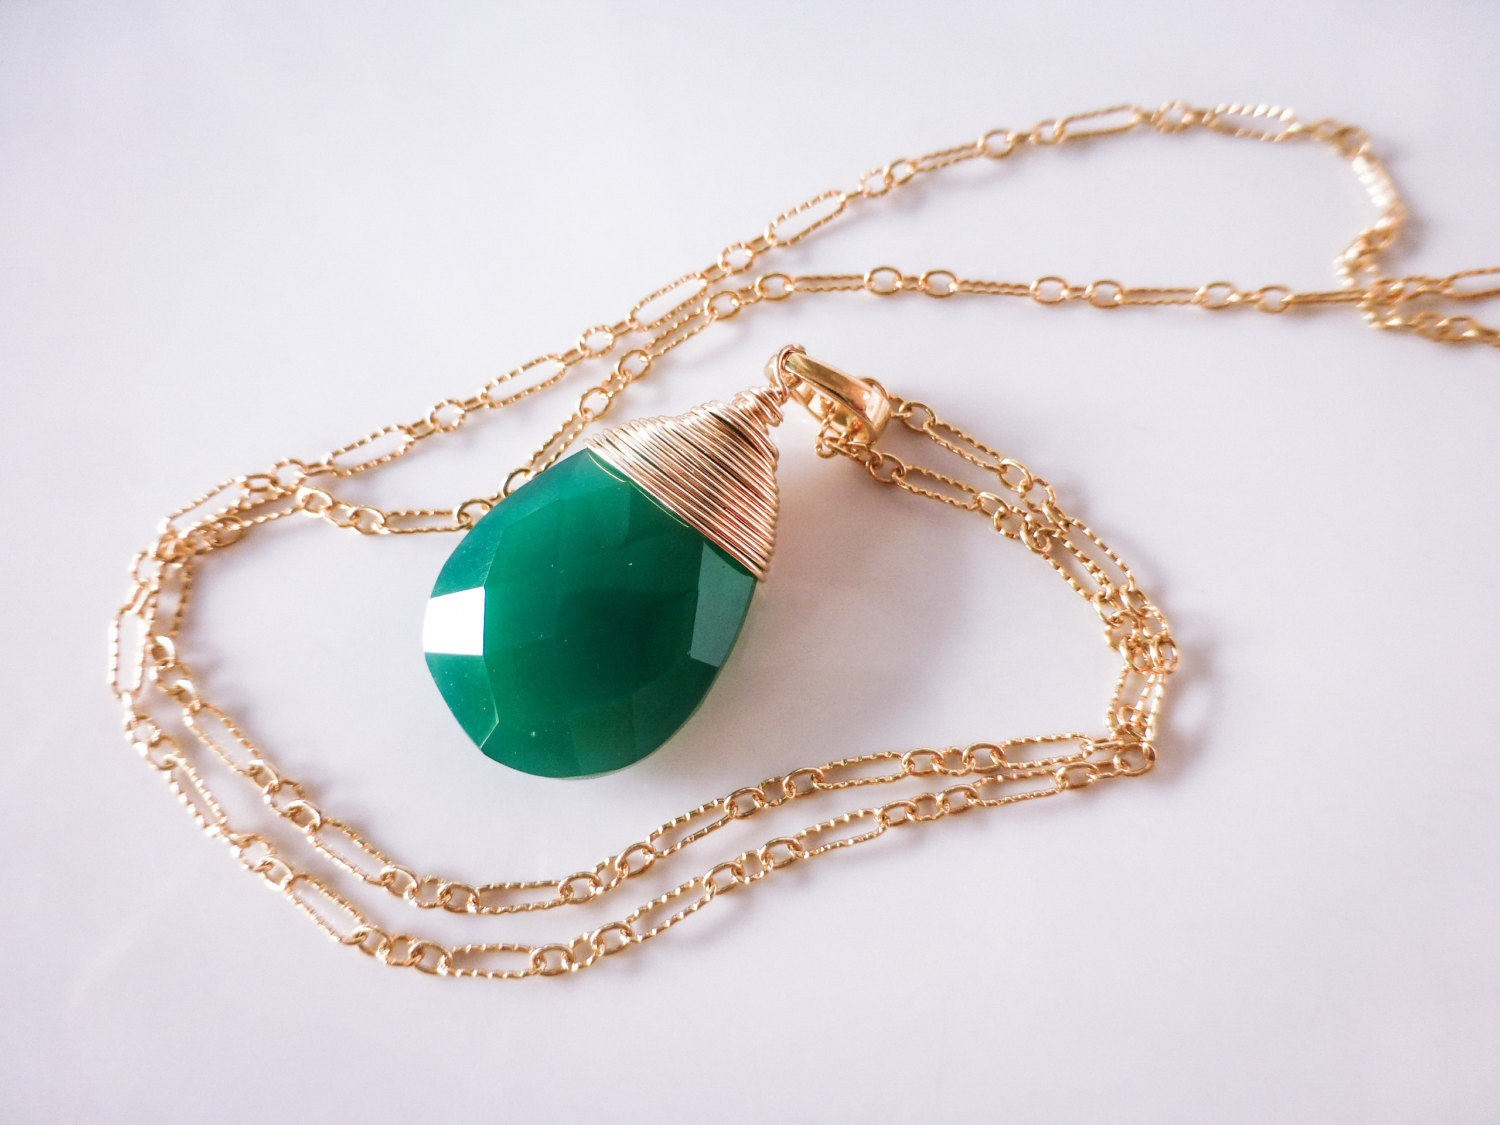 Emerald green onyx large pendant necklace in gold filled valltasy the layla pendant emerald green onyx large pendant necklace in gold filled aloadofball Choice Image